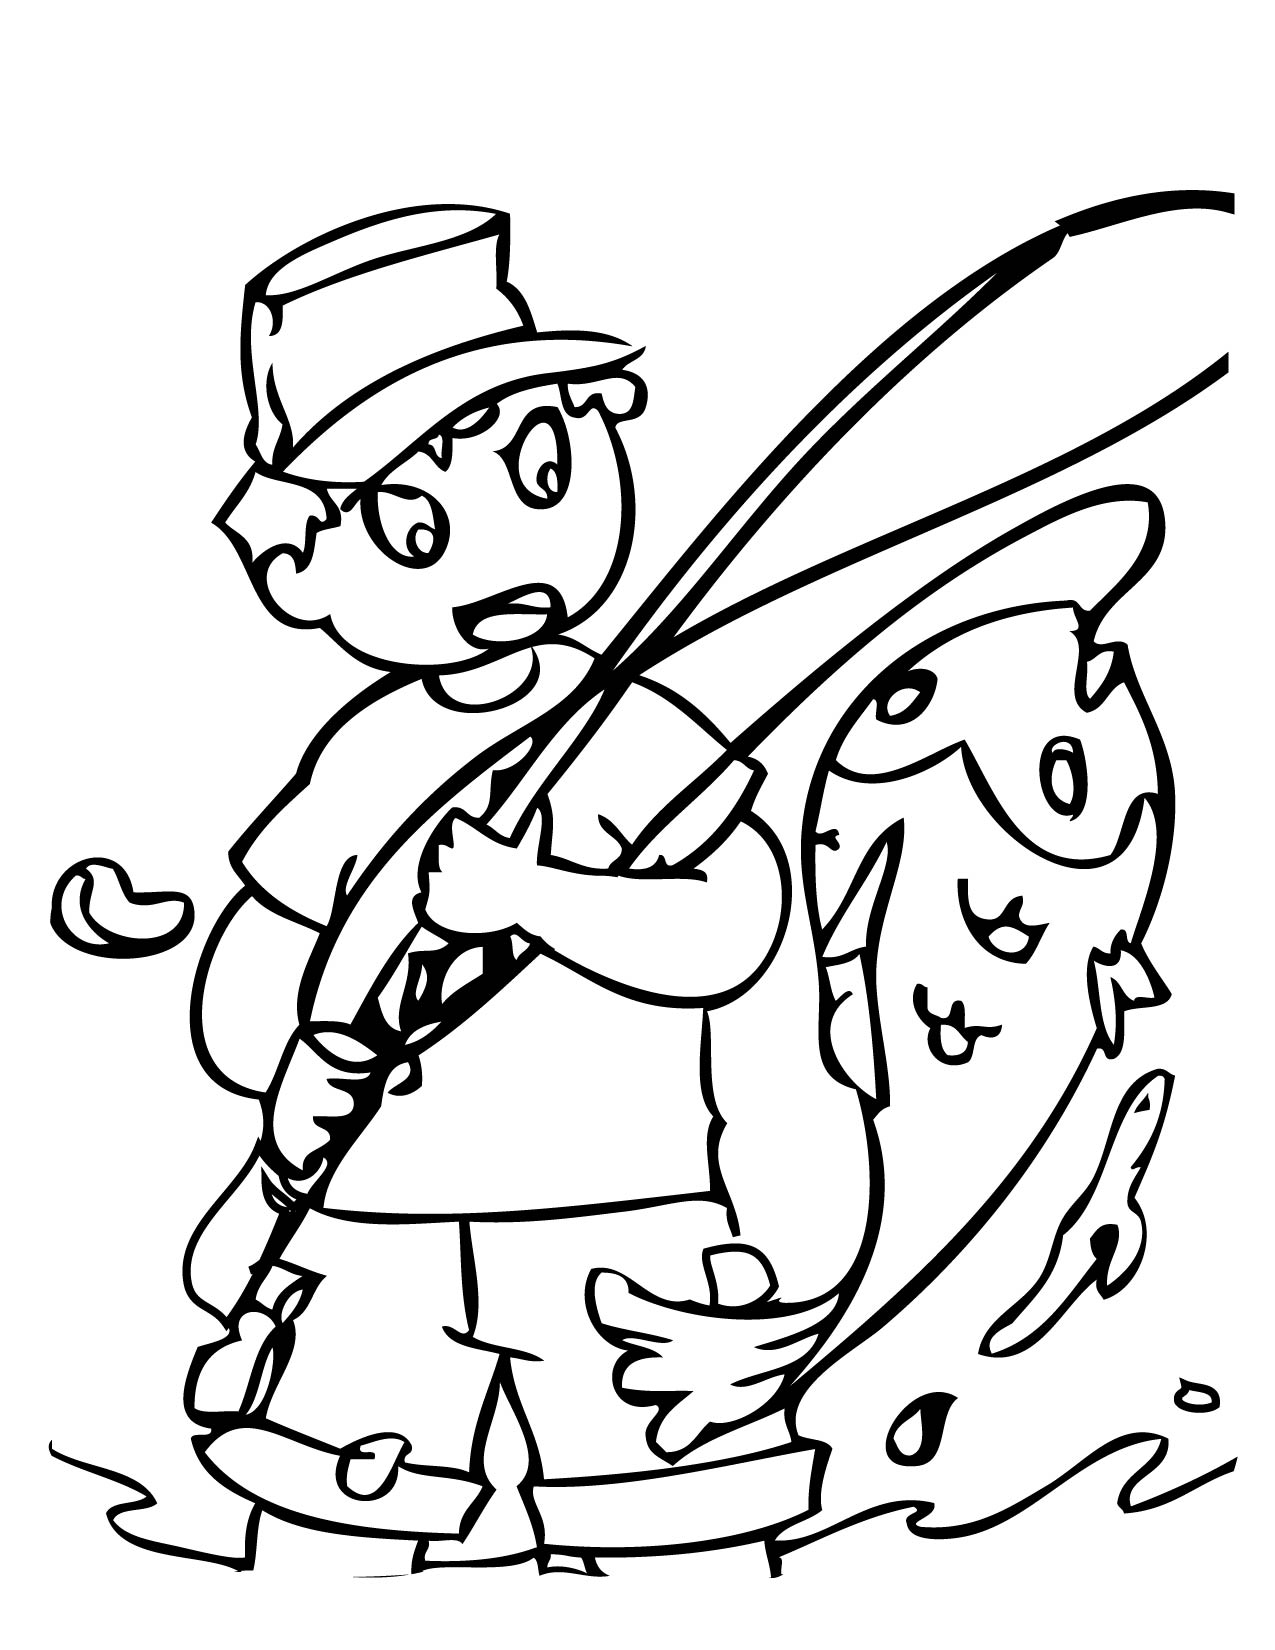 Fishing Coloring Page Handipoints